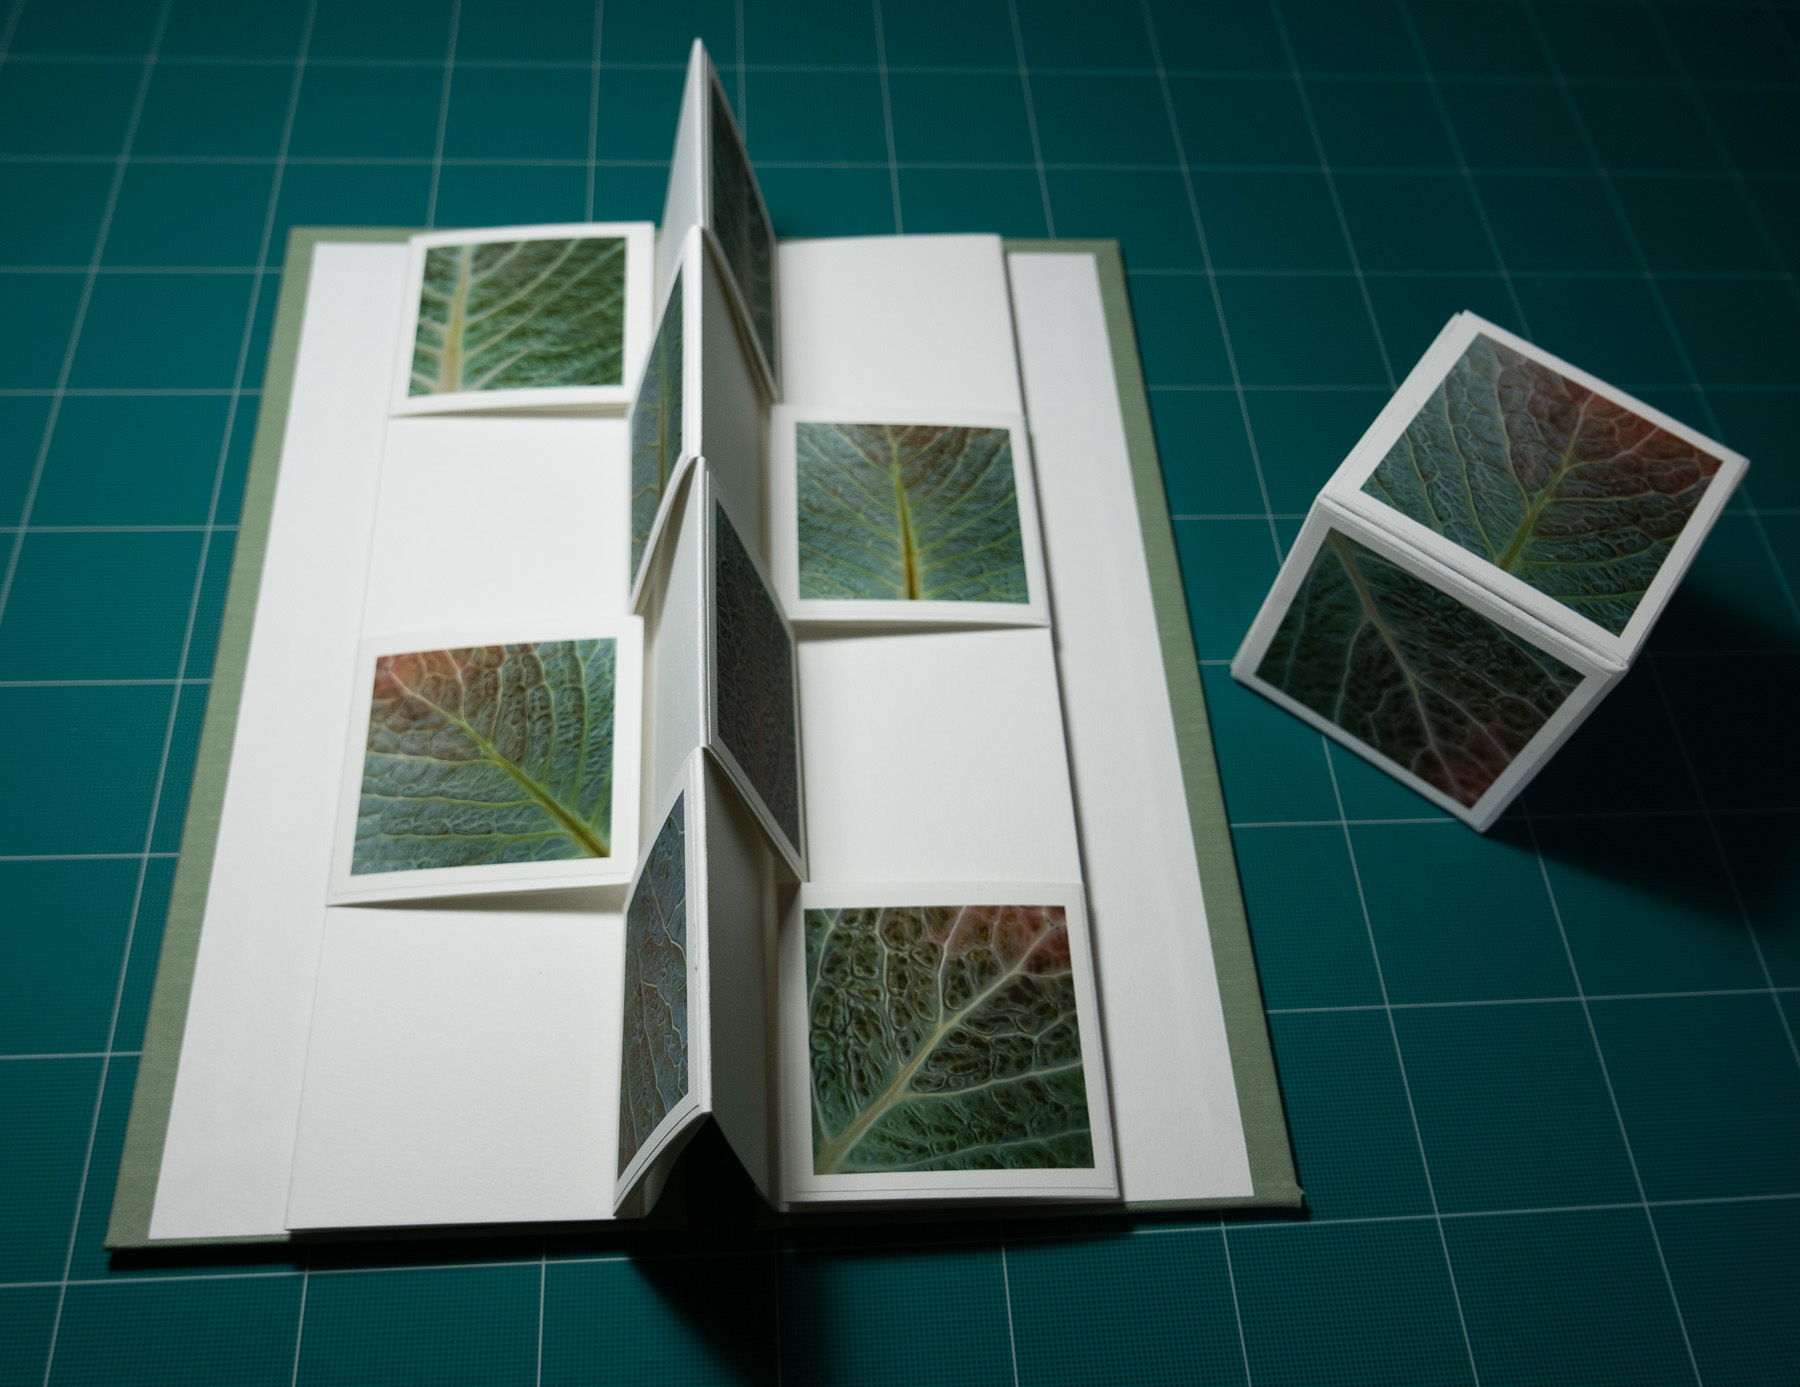 Savoy Leaves book opened and photo cube